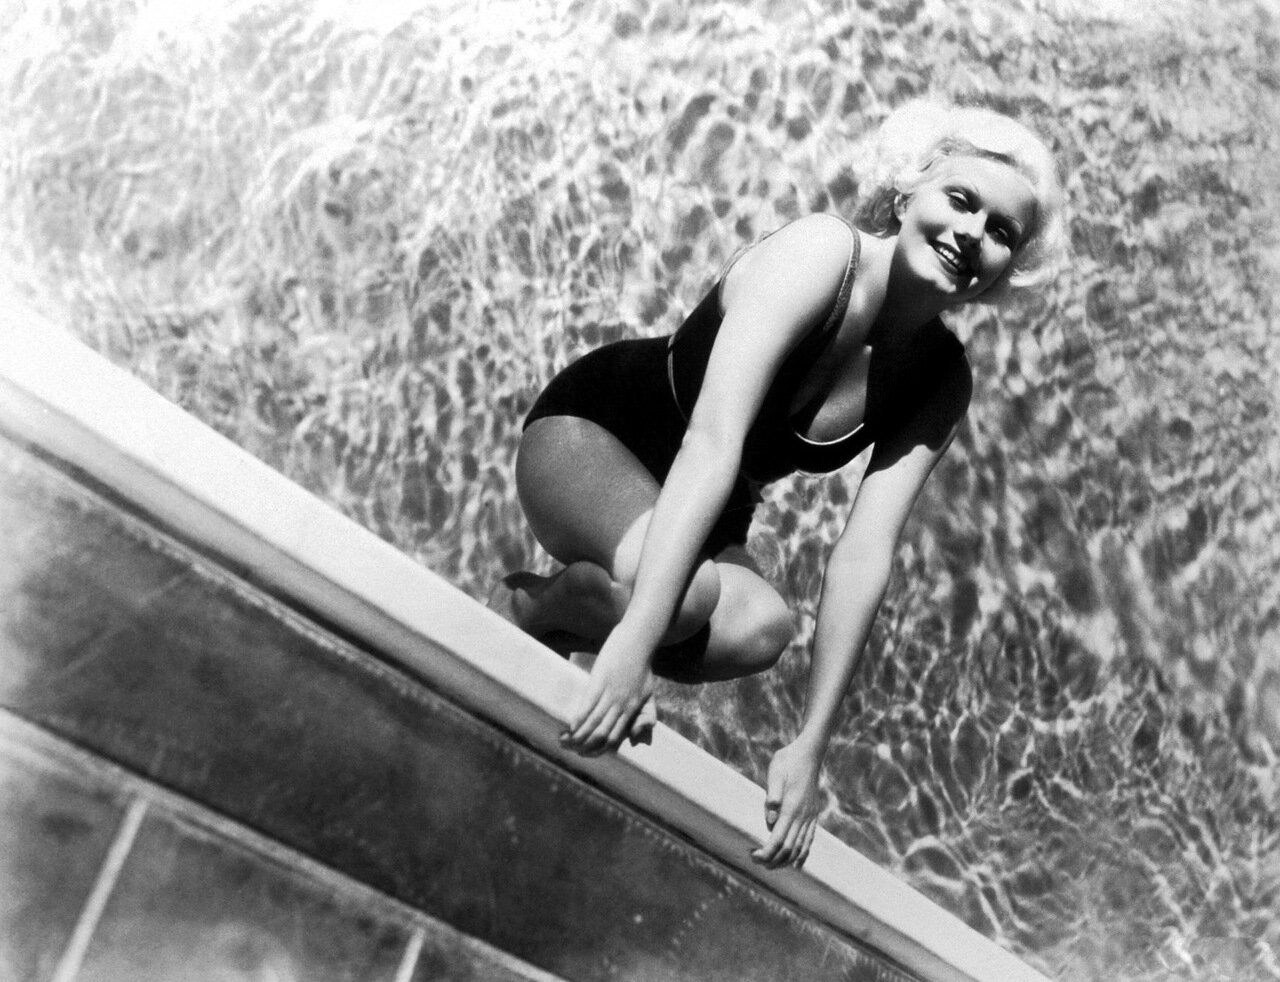 1935: Portrait of American actor Jean Harlow (1911 - 1937) smiling as she holds on to the side of a swimming pool. She wears a bathing suit.